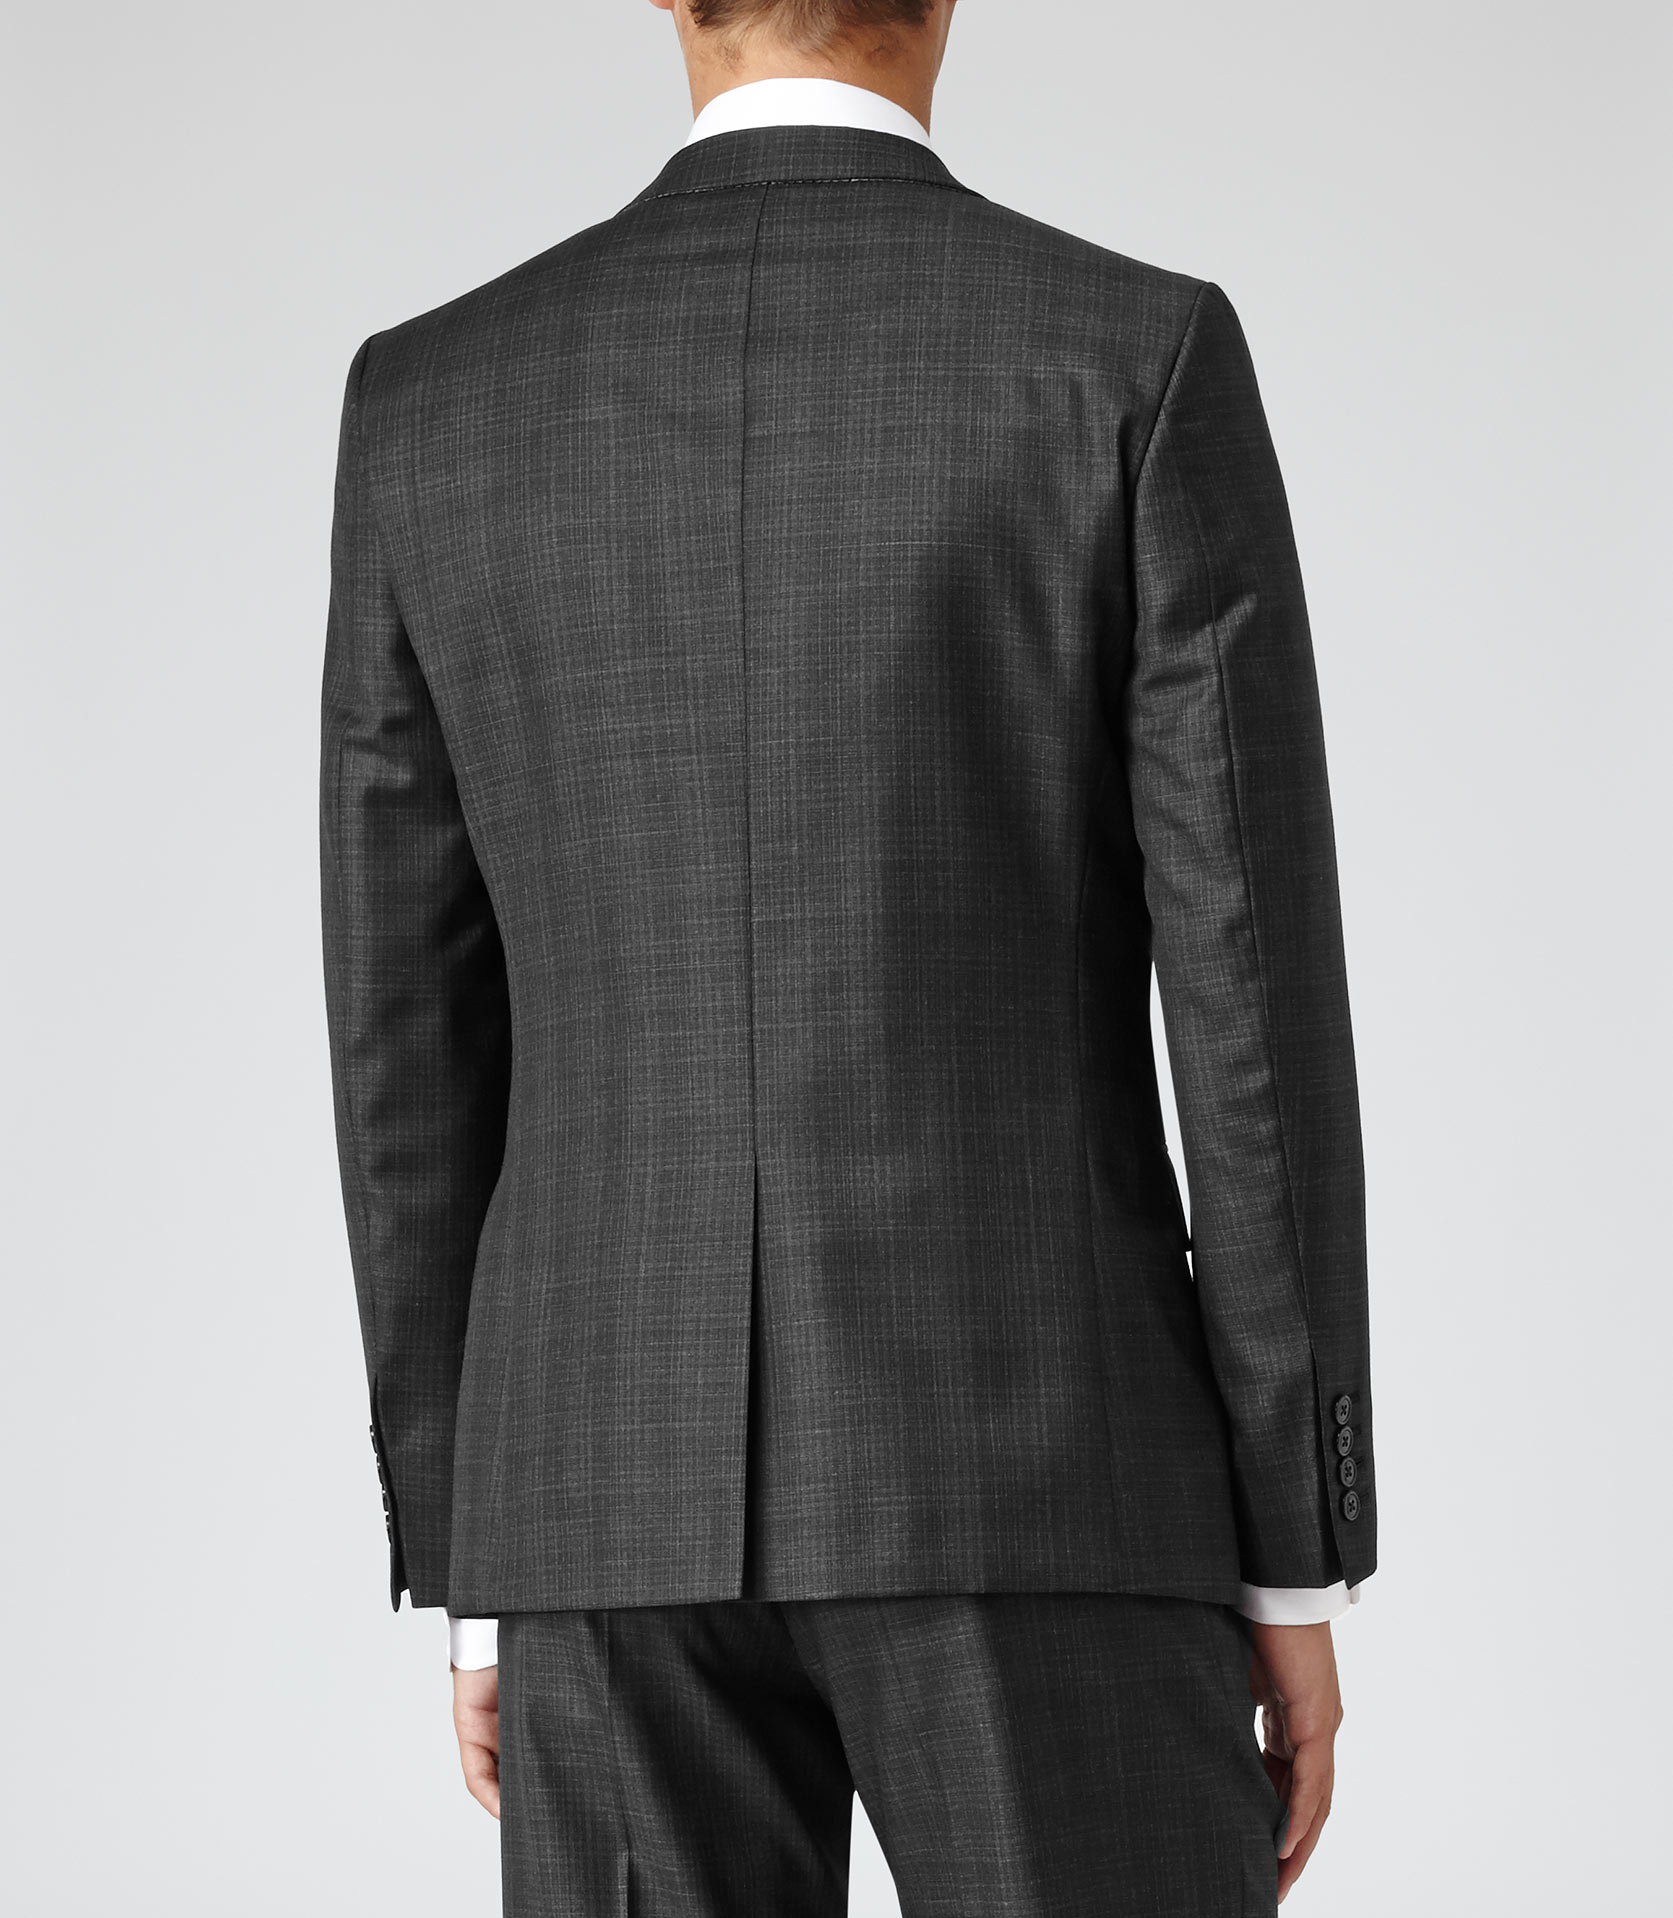 Reiss Gilstone B Check Blazer in Charcoal (Grey) for Men